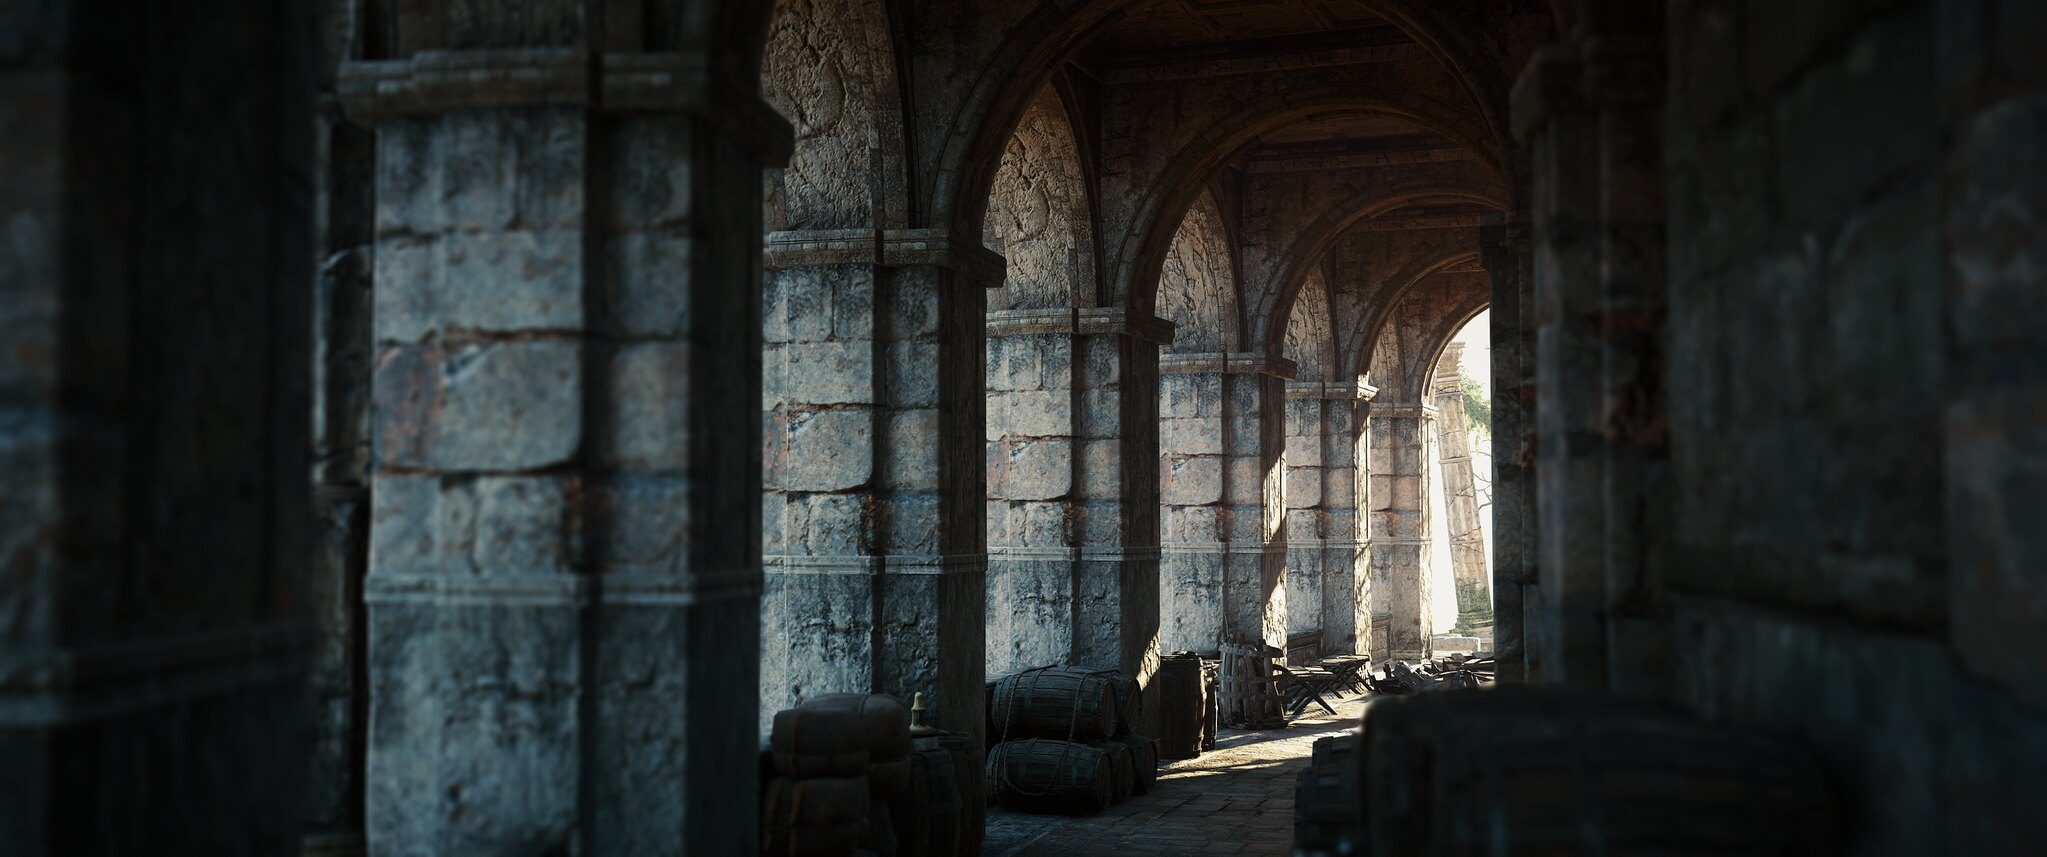 Assassin's Creed: Valhalla shot by Jim2point0